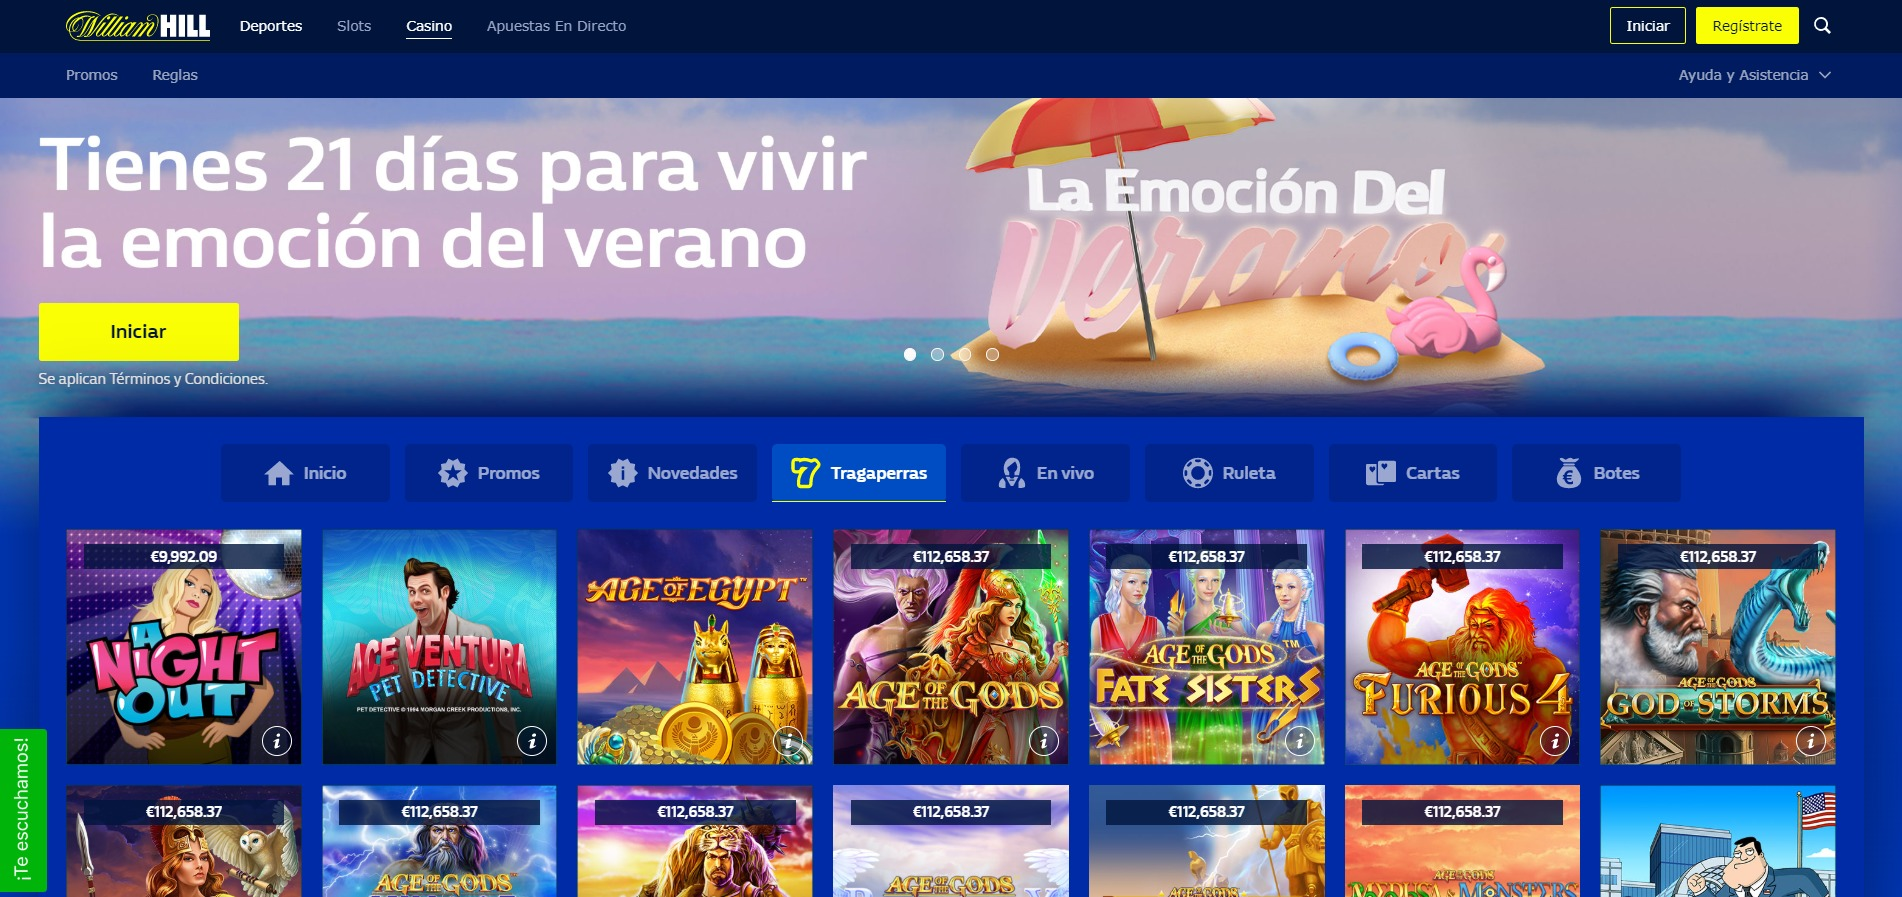 William Hill Casino Tragaperras Ordenador